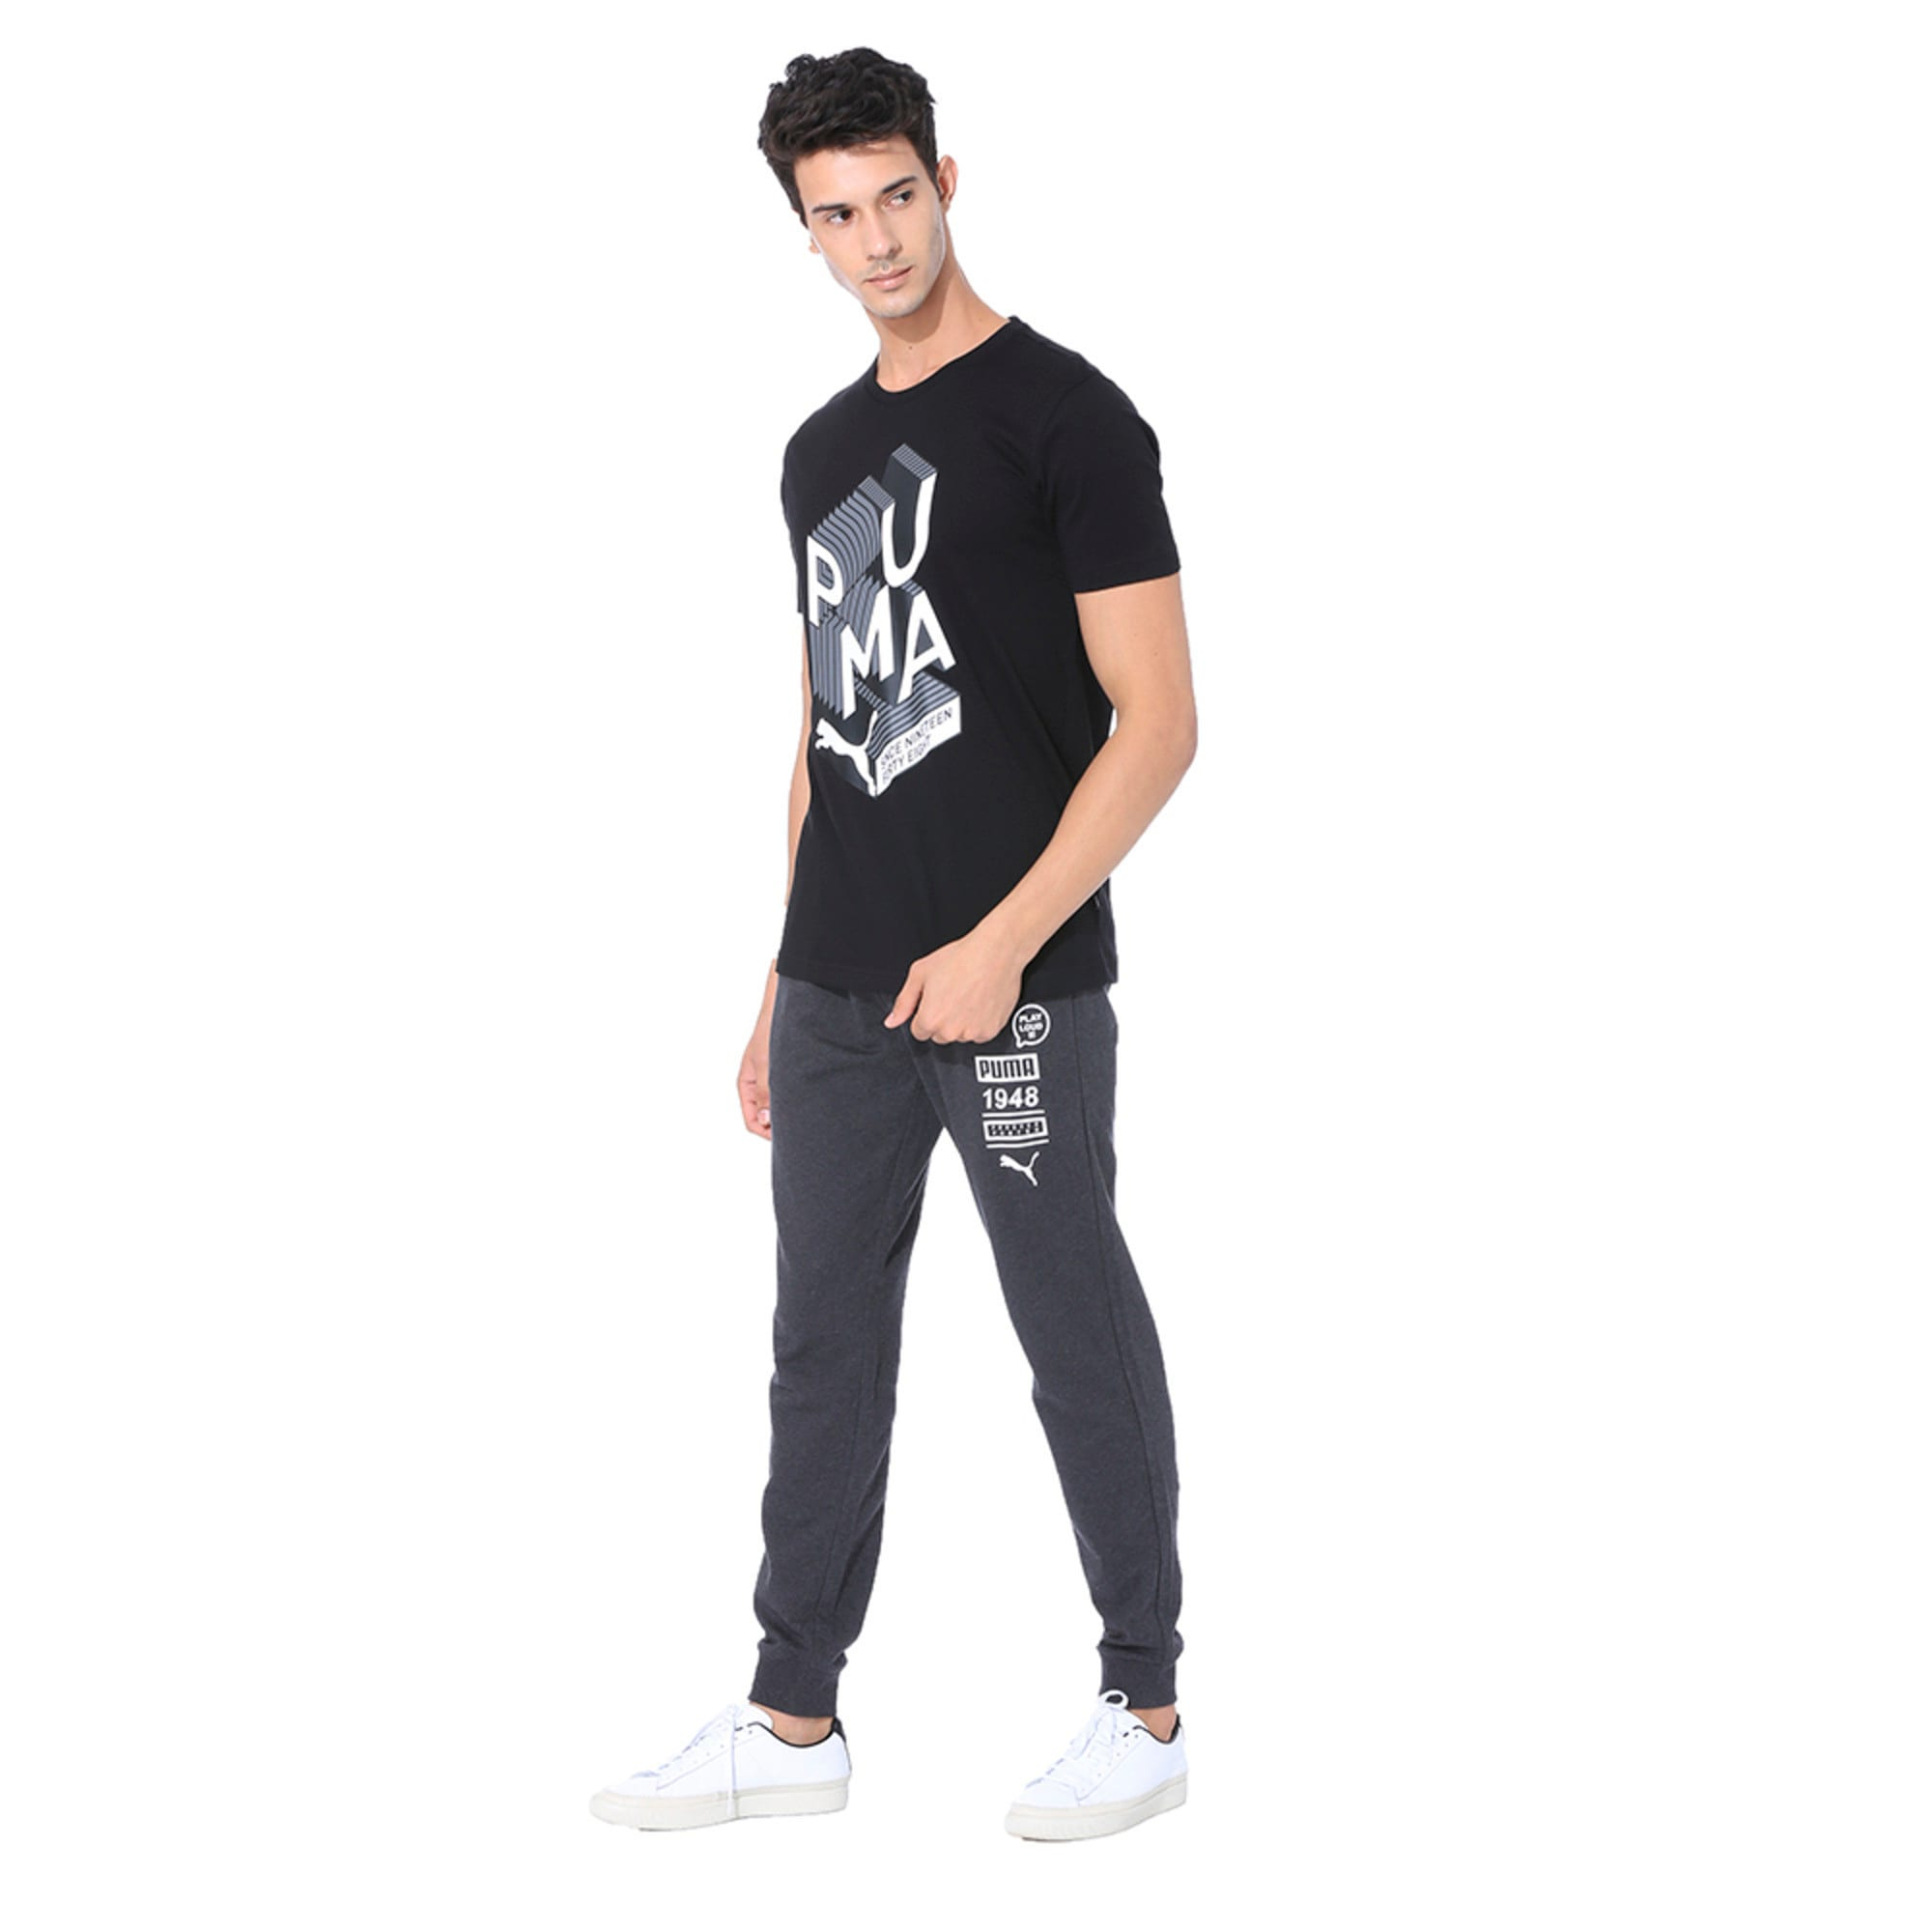 Men's Graphic Effect Tee, Puma Black, large-IND